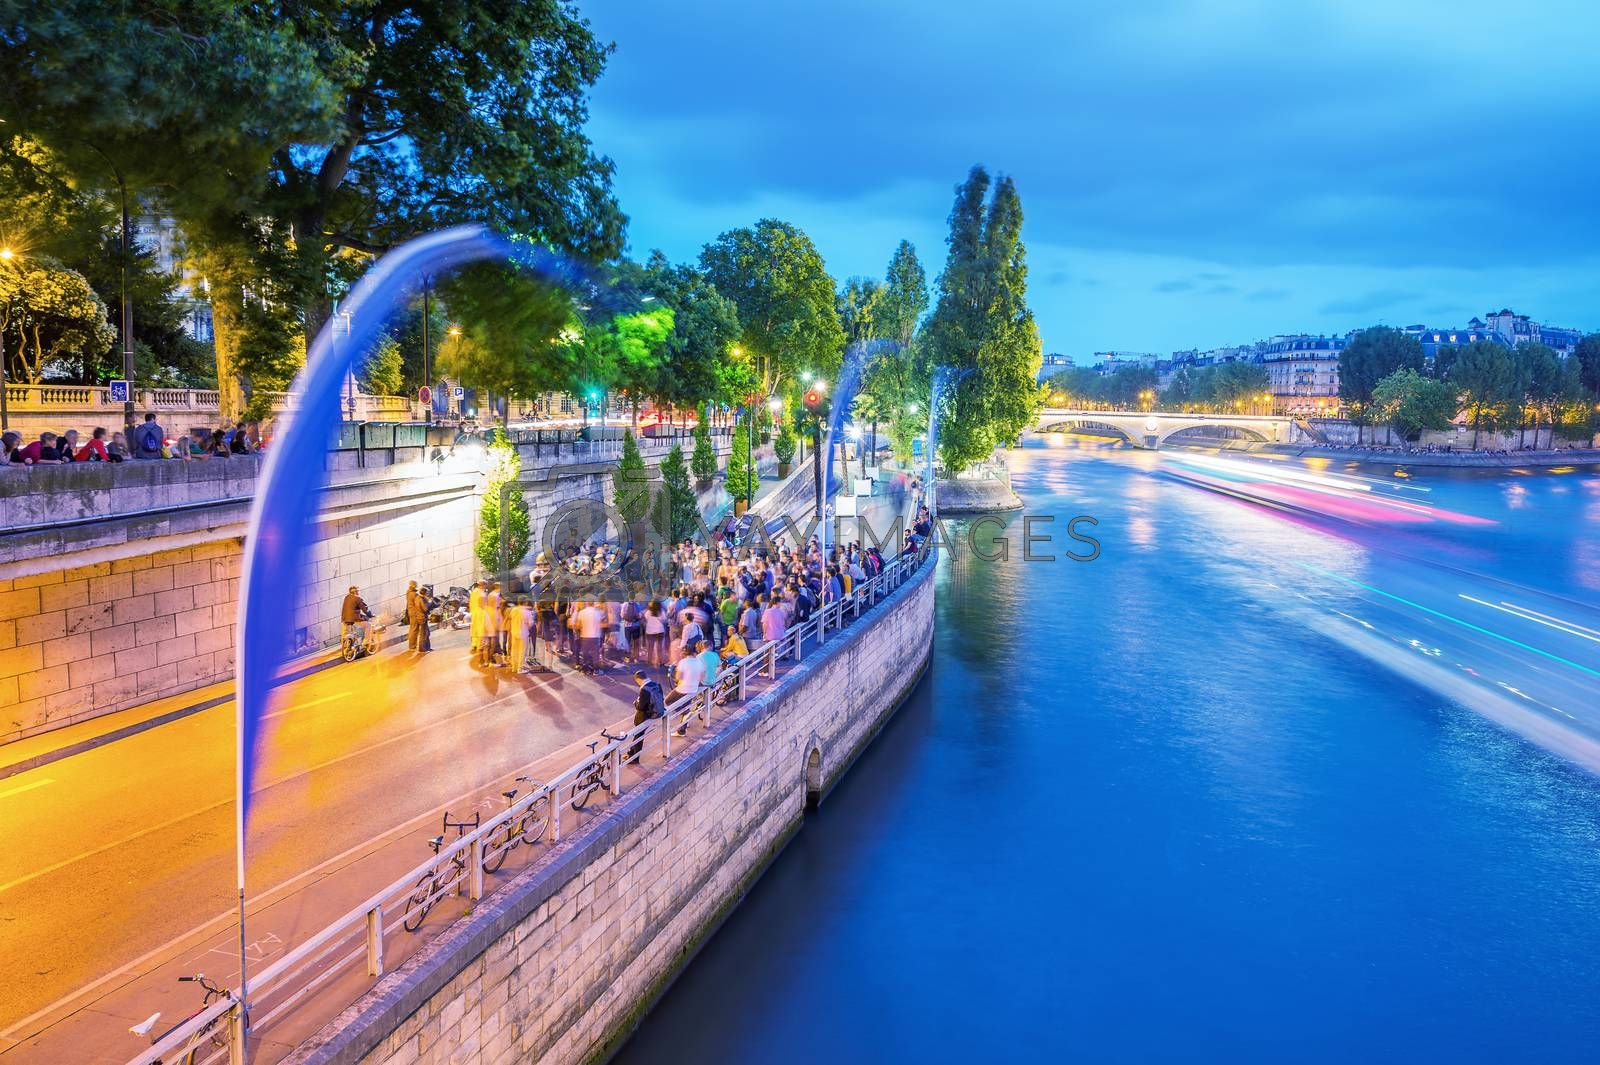 PARIS - JUNE 13, 2014: Tourists along Seine river at dusk. More than 30 million people visit the city every year.